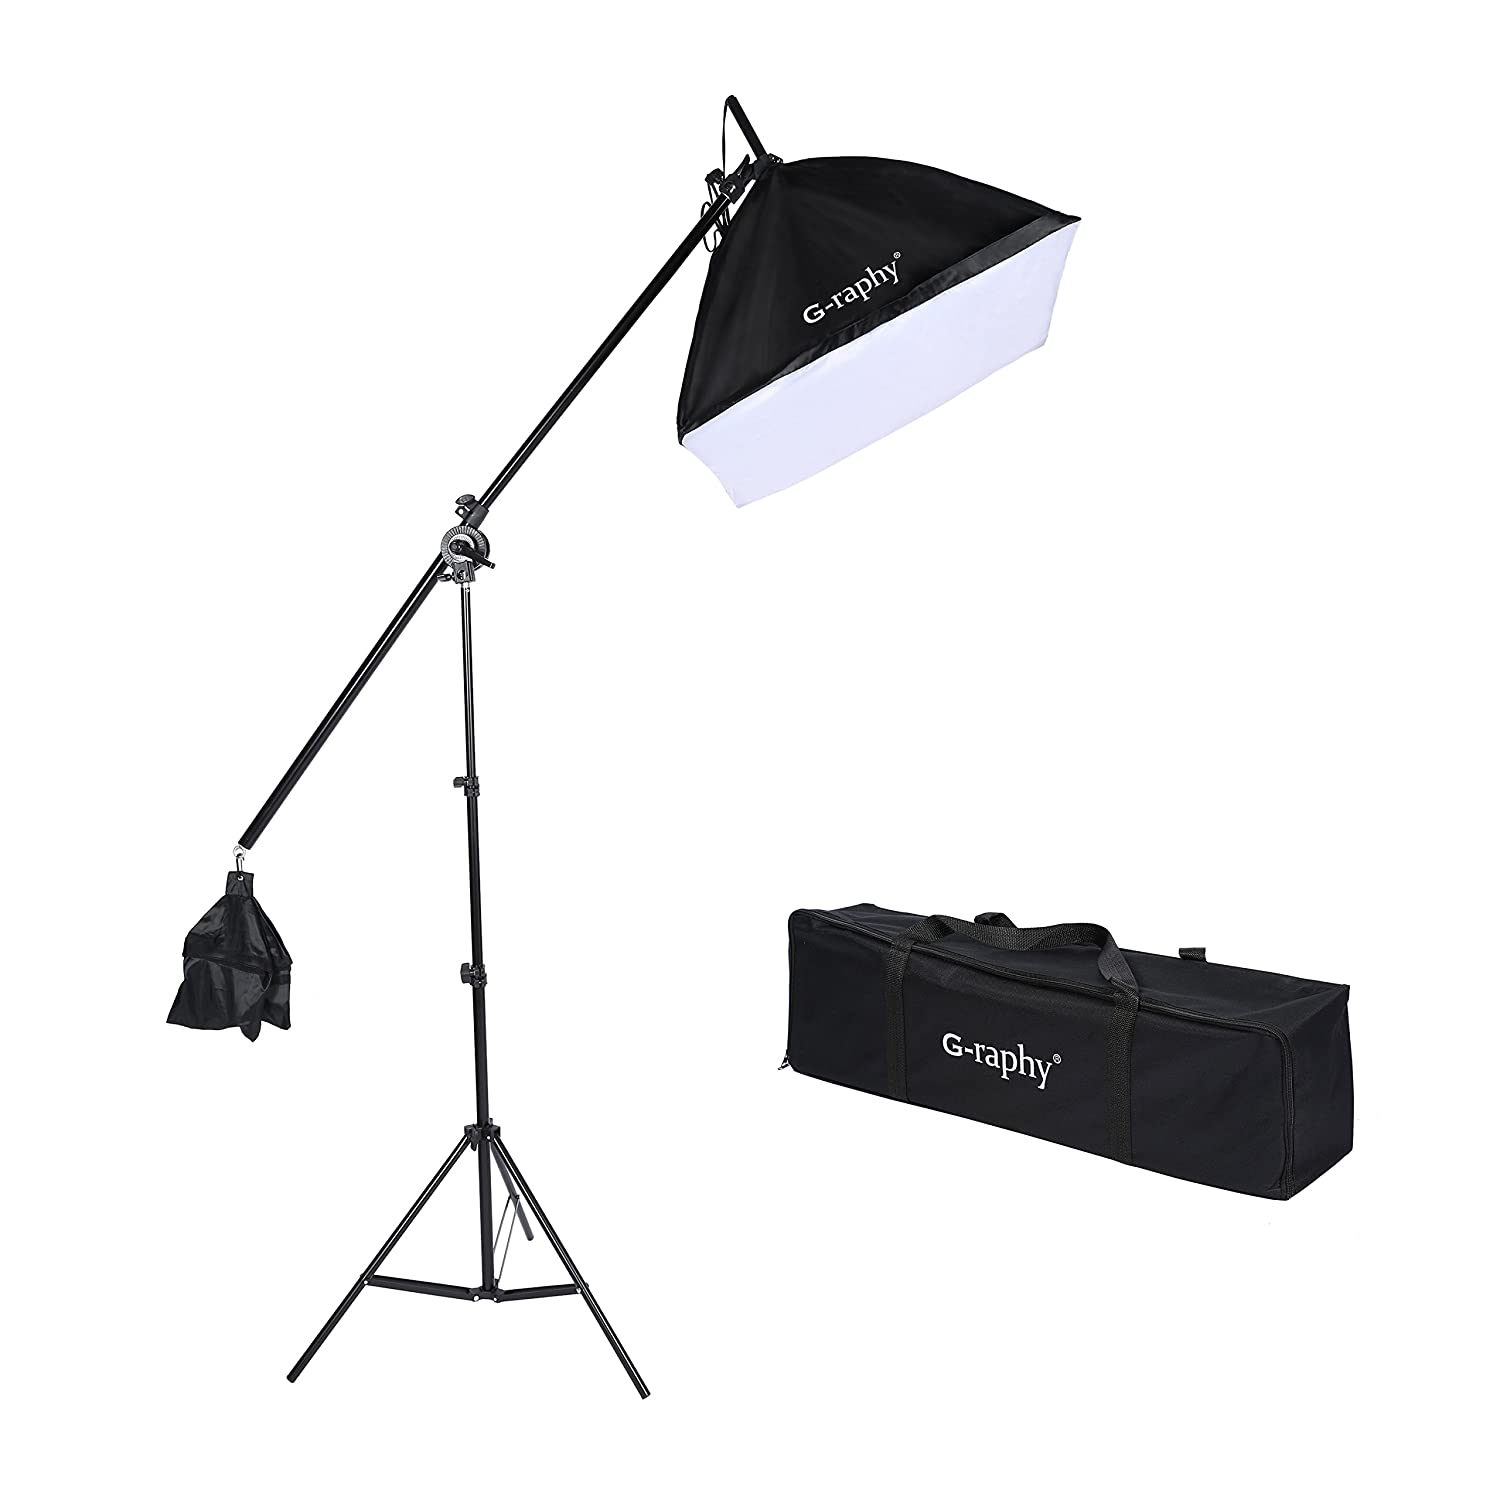 G-raphy Photography Video Studio Continuous Softbox Lighting Light Kit with Photo CFL 85W Bulb